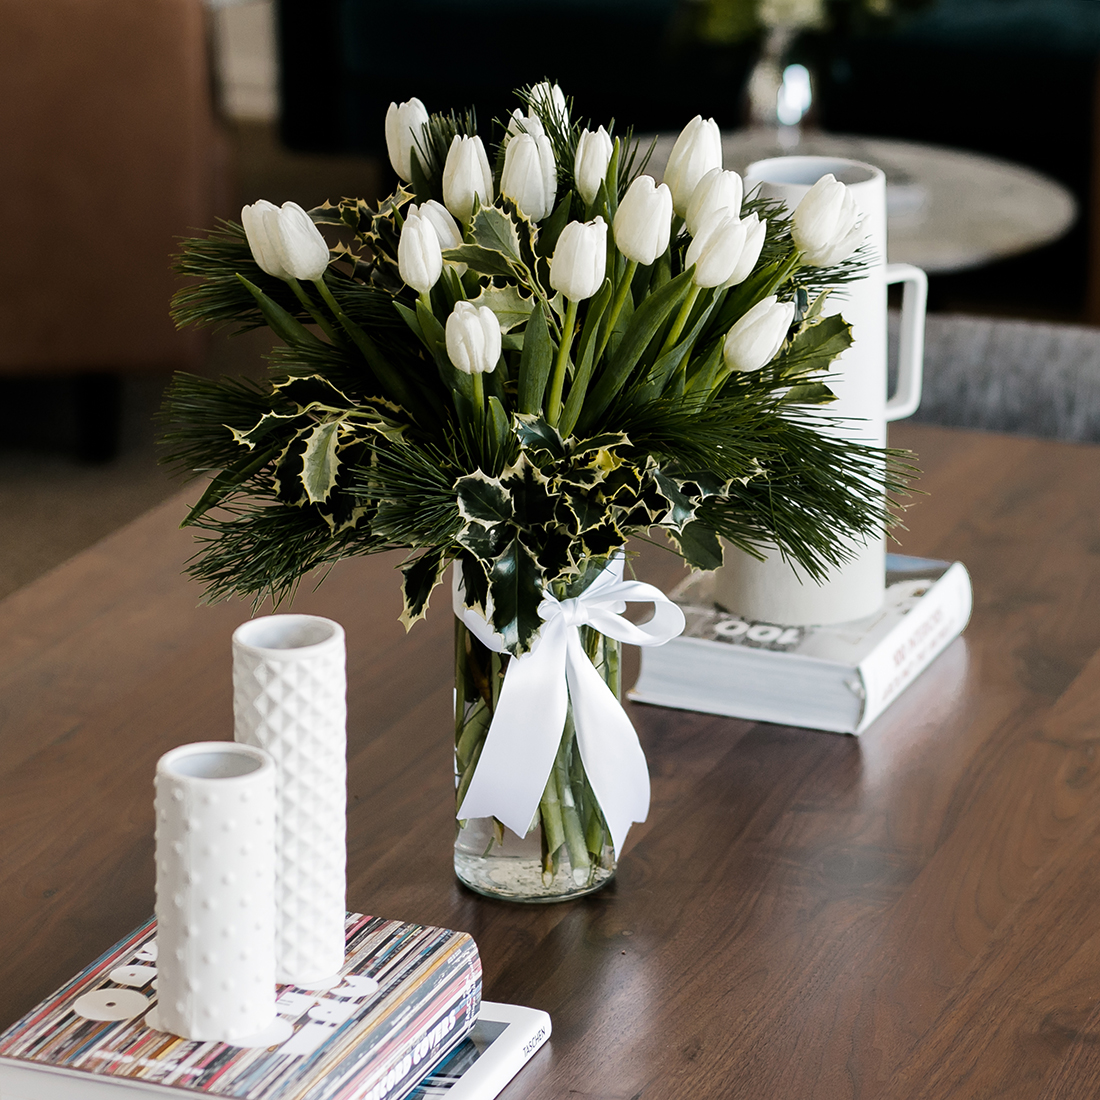 White tulips and greenery in a clear vase with white ribbon on wood table with books and candles